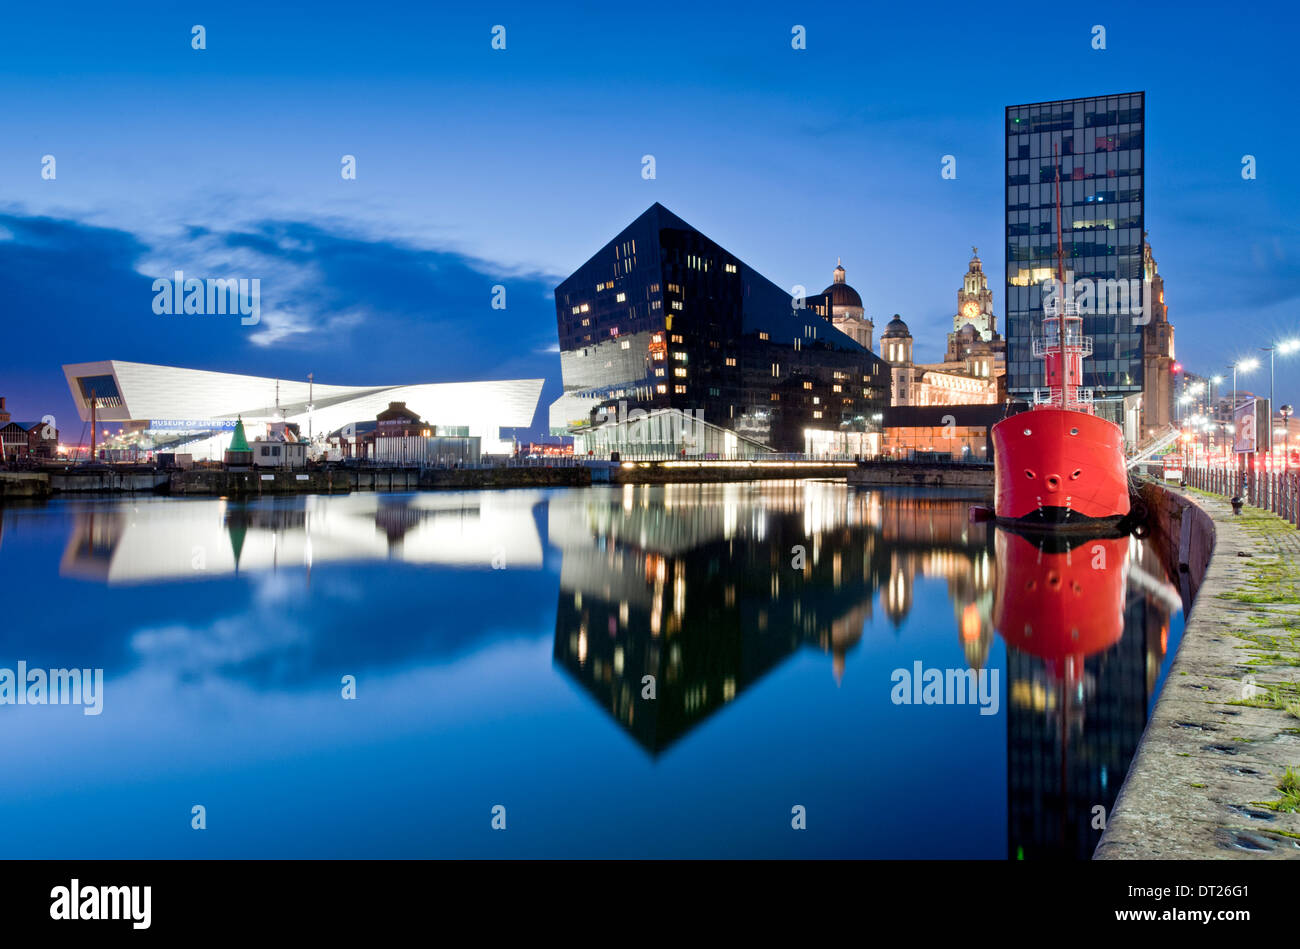 Liverpool Skyline at Night Viewed Over Canning Dock, Liverpool, Merseyside, England, UK - Stock Image